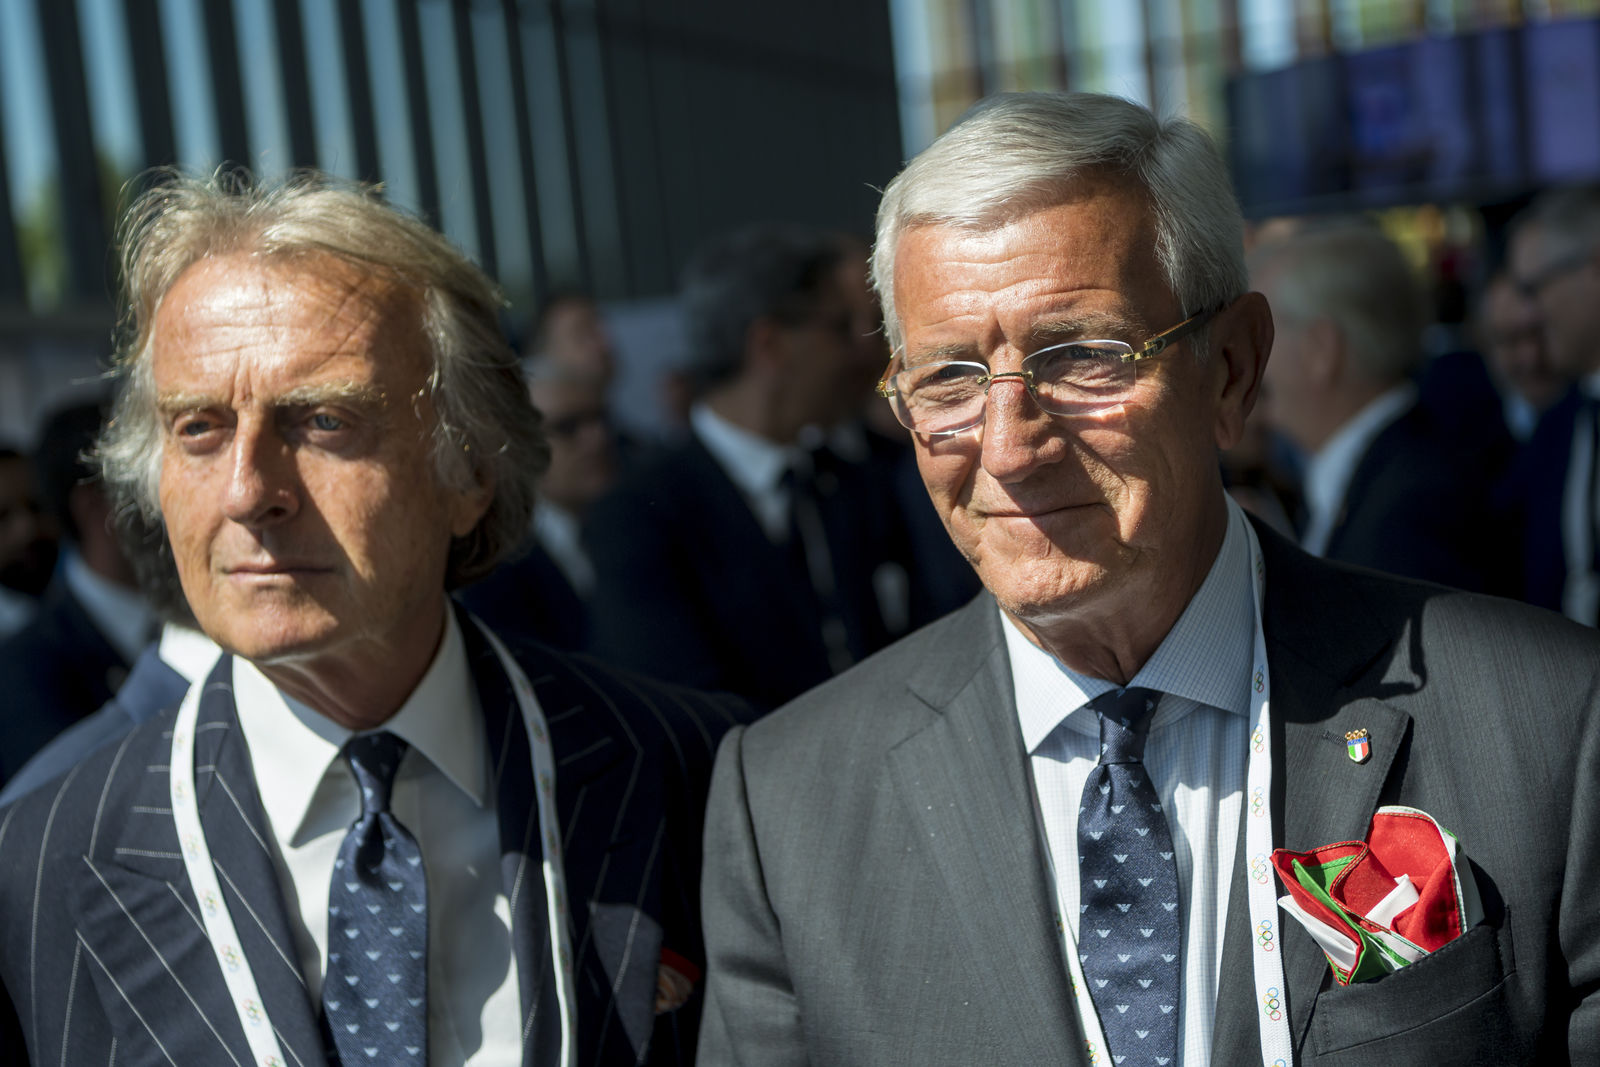 Alitalia President Luca cordero di Montezemolo, left, and former Italian soccer player and coach Marcello Lippi, right, arrive during the first day of the 134th Session of the International Olympic Committee (IOC), at the SwissTech Convention Centre, in Lausanne, Switzerland, Monday, June 24, 2019. (Jean-Christophe Bott/Keystone via AP)